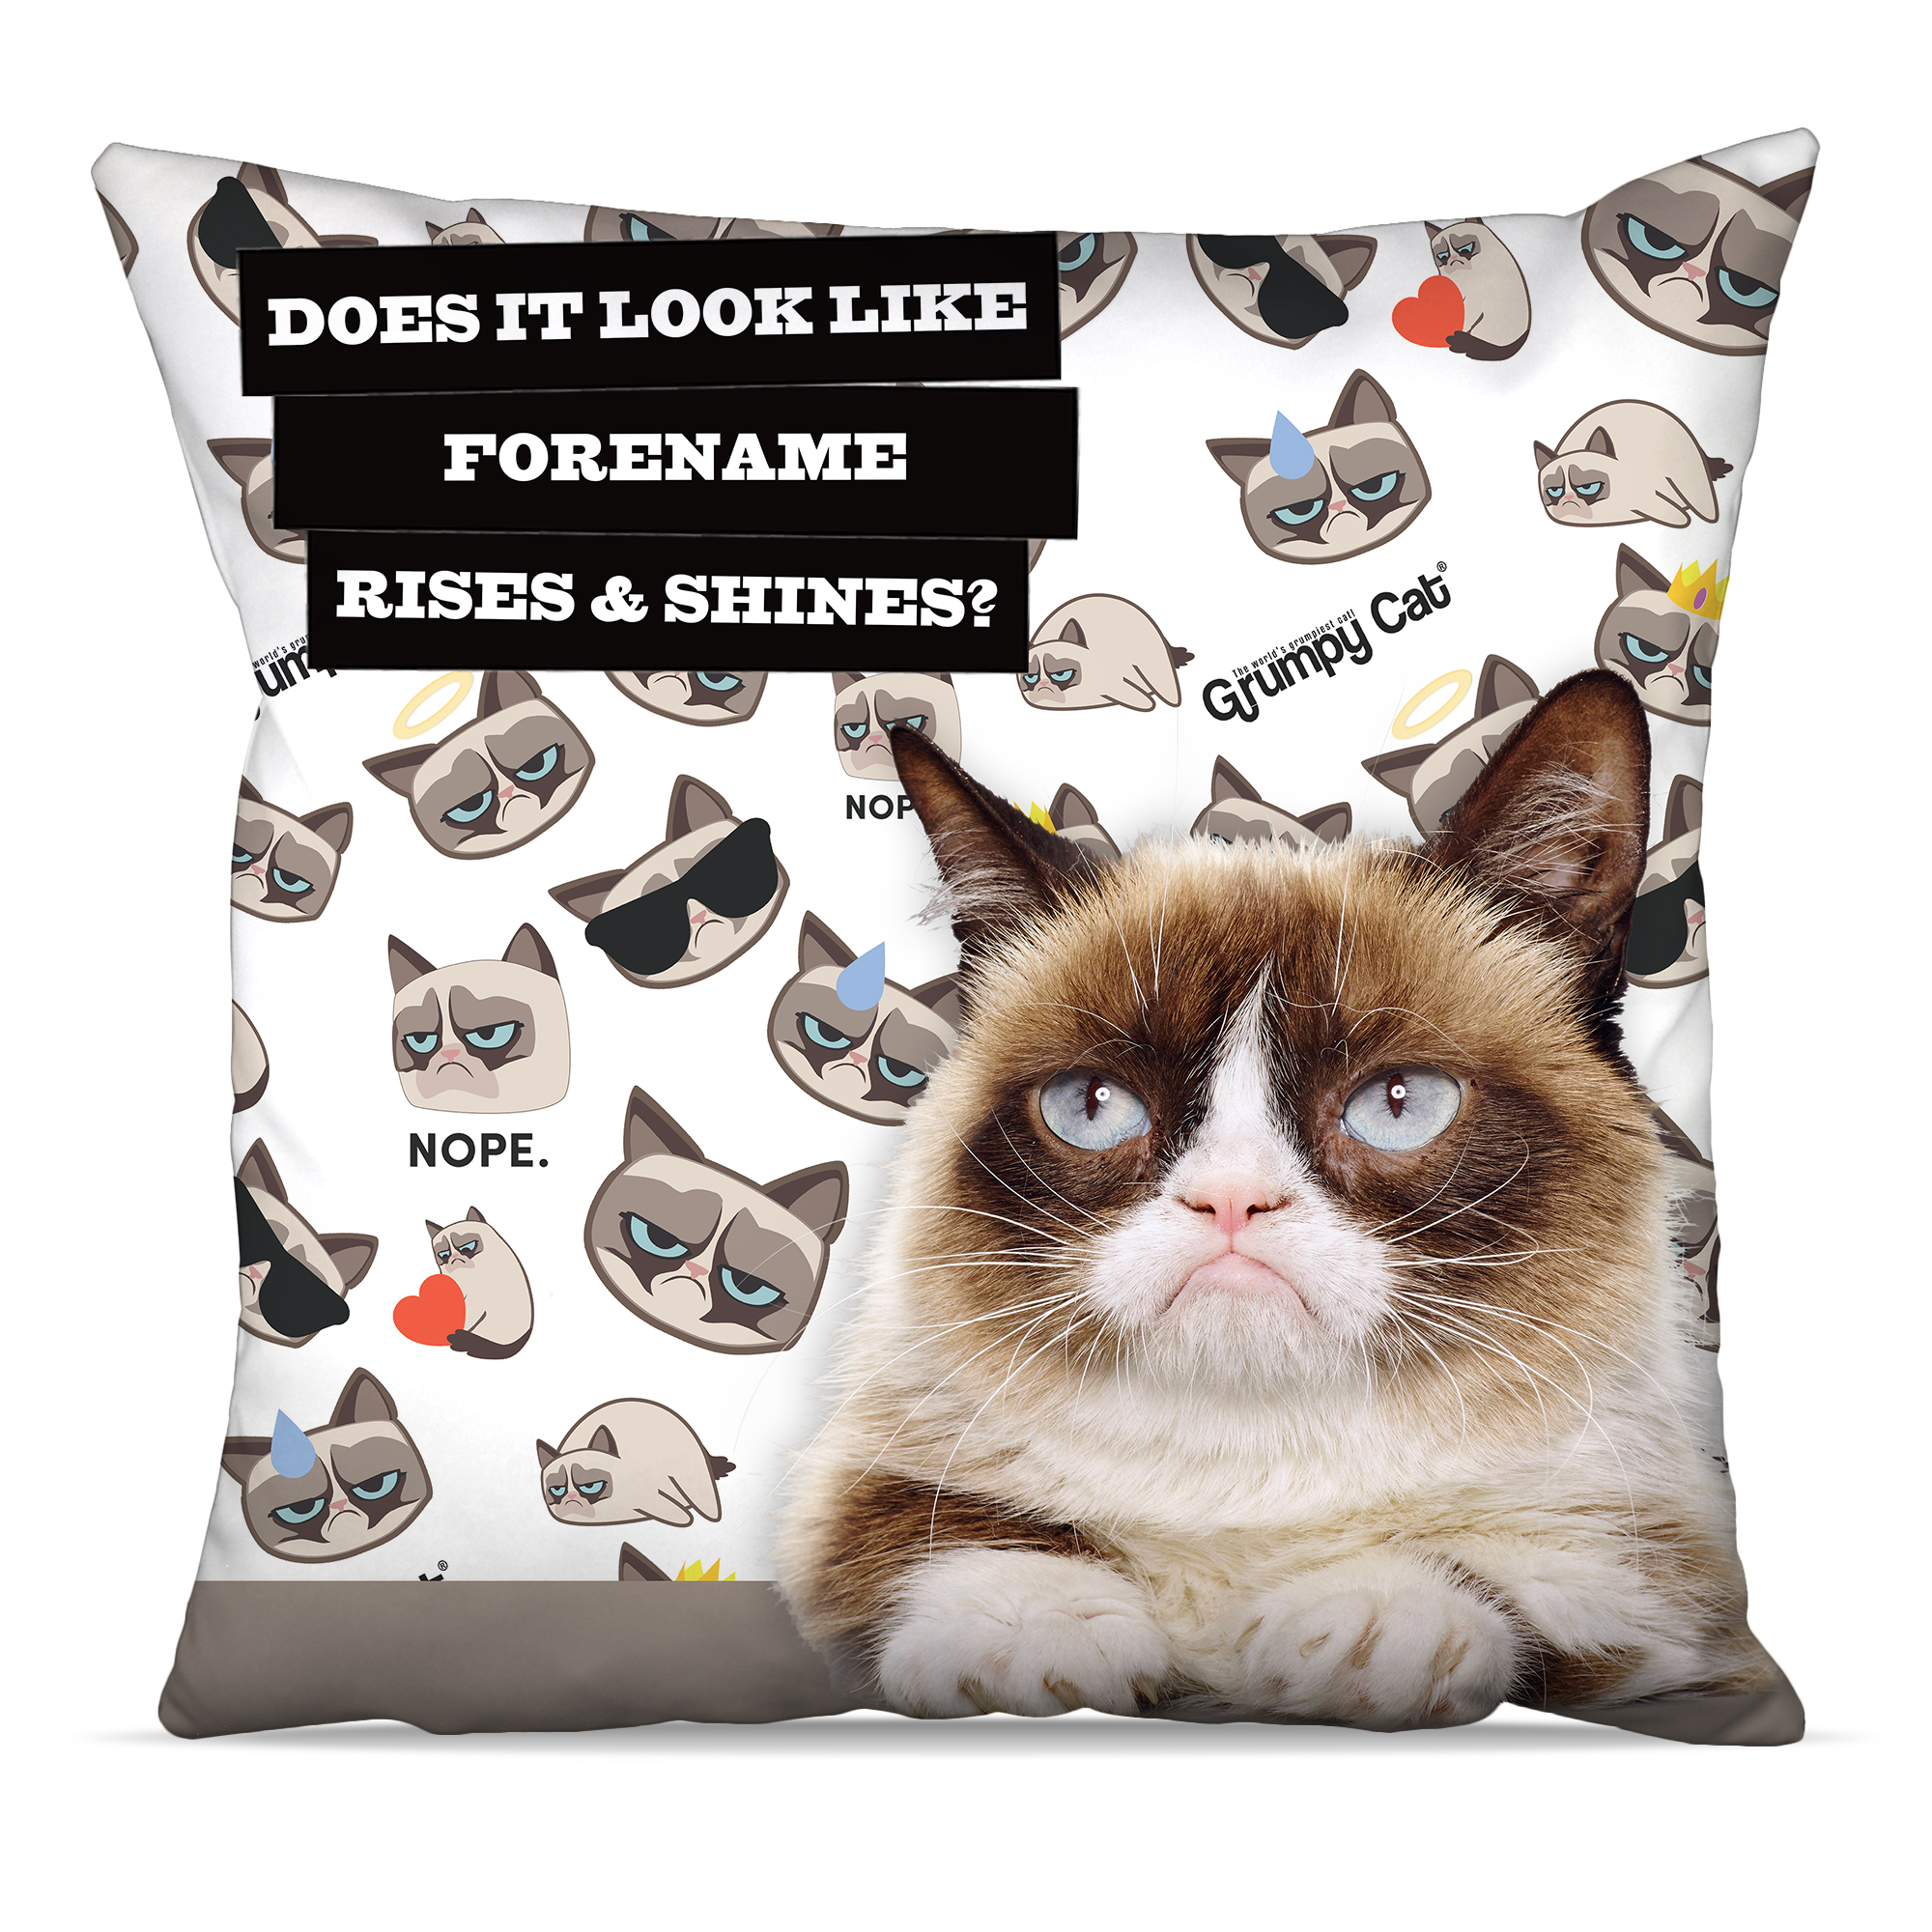 Grumpy Cat - Rise and Shine Cushion